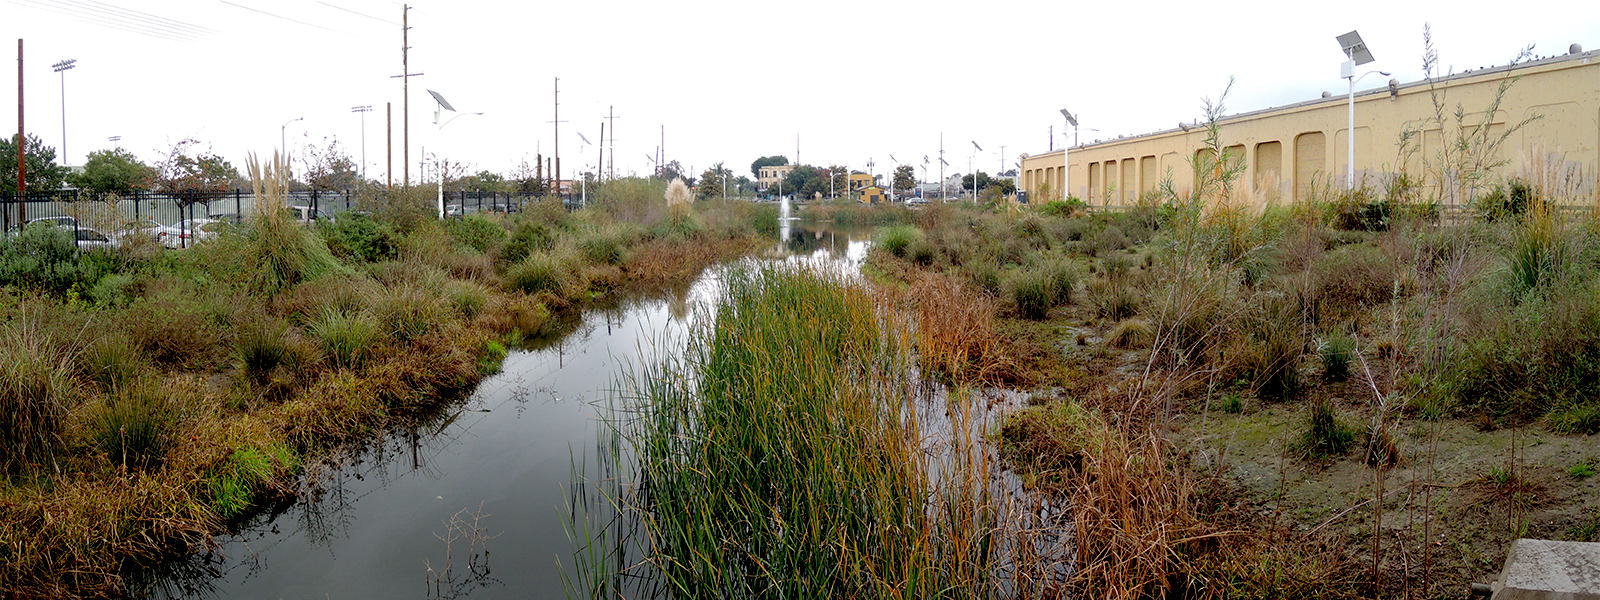 the South los angeles wetland park, with its building facility to the right